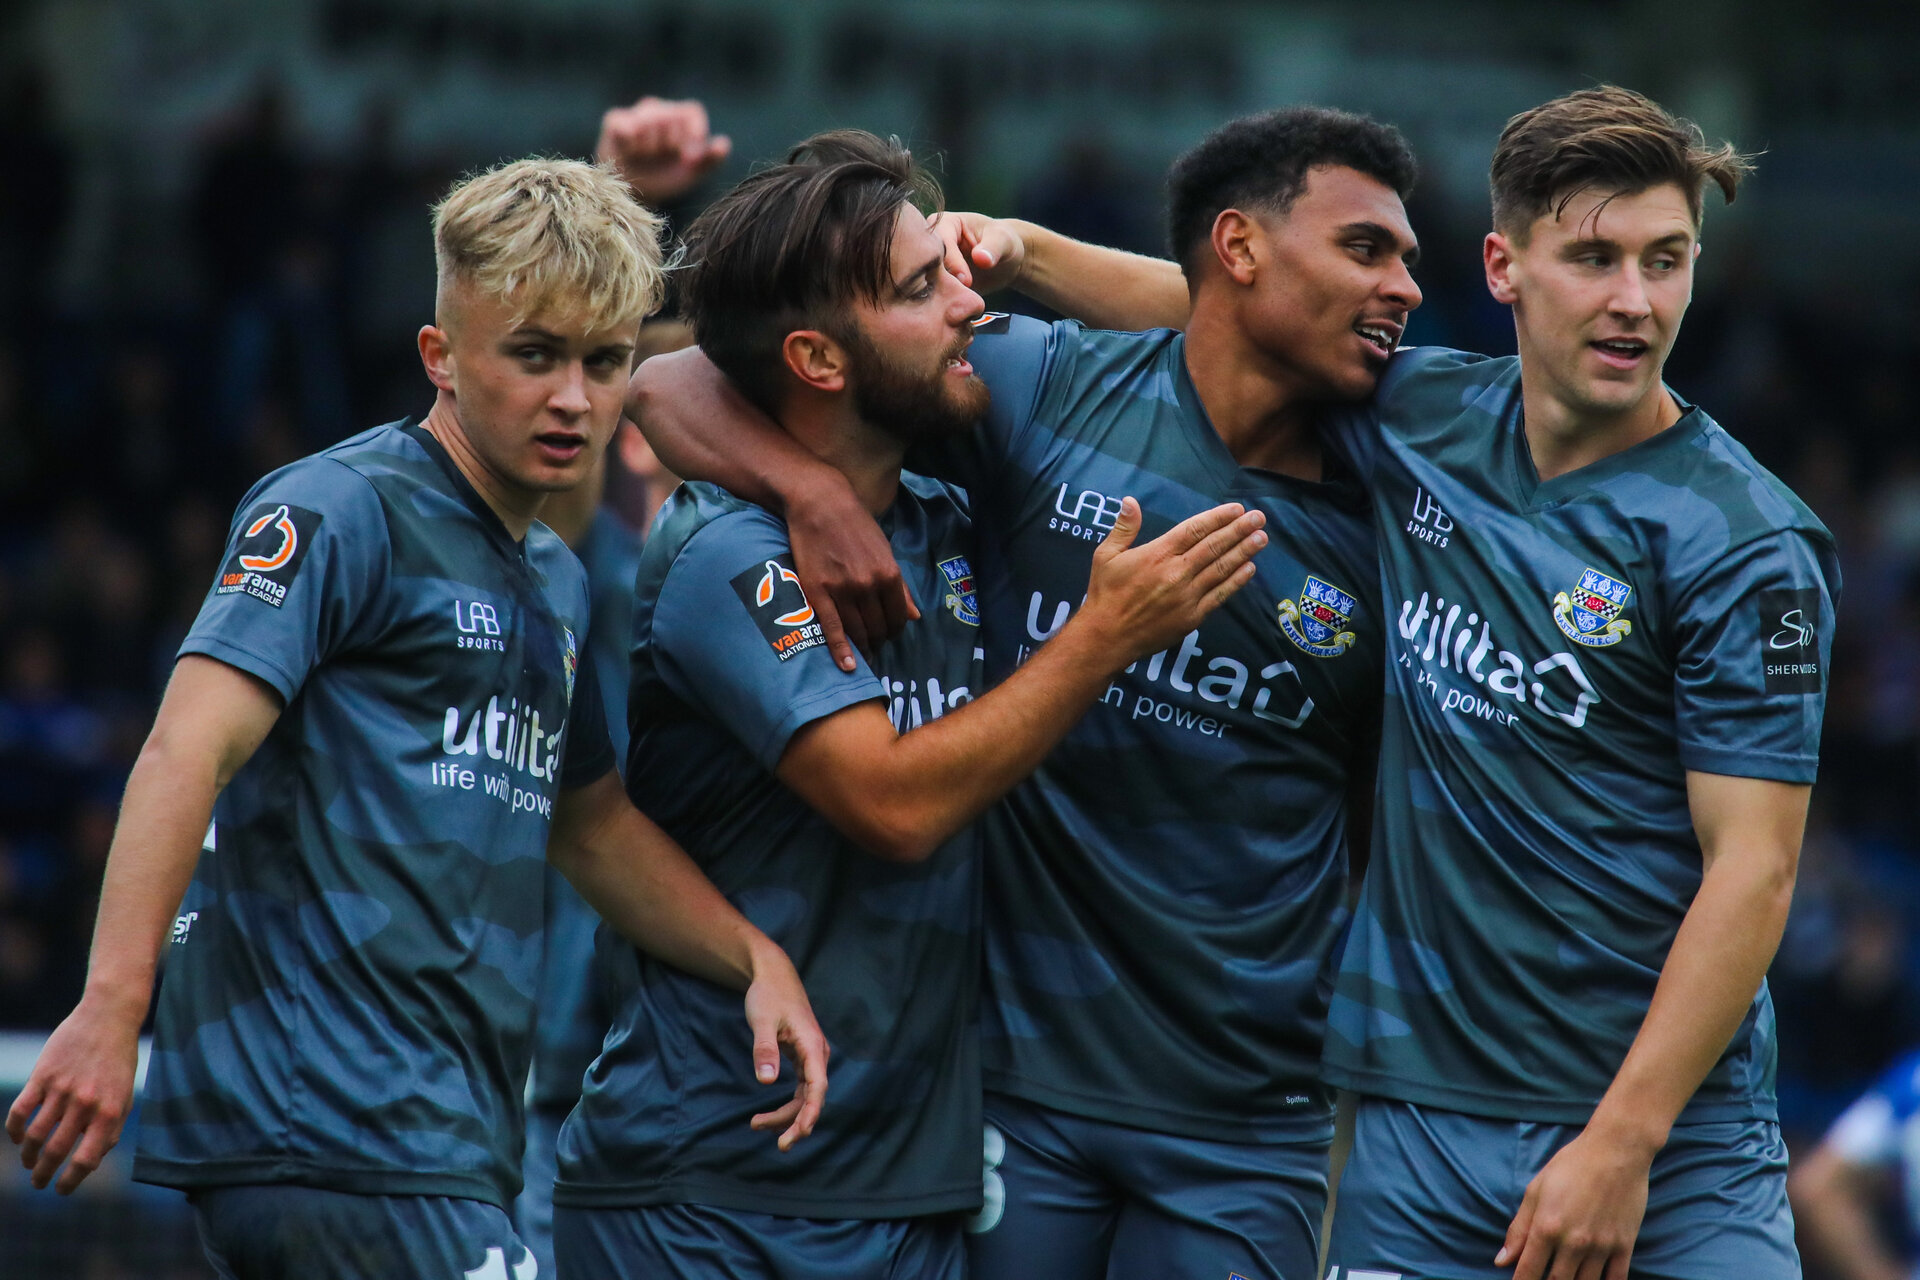 CHESTERFIELD, ENGLAND - OCTOBER 5: Marcus Barnes of Southampton FC (on loan at Eastleigh FC) celebrates with Eastleigh teammates after scoring his side's second goal during the Vanarama National League match between Chesterfield FC and Eastleigh FC at the Proact Stadium on October 5, 2019 in Chesterfield, England